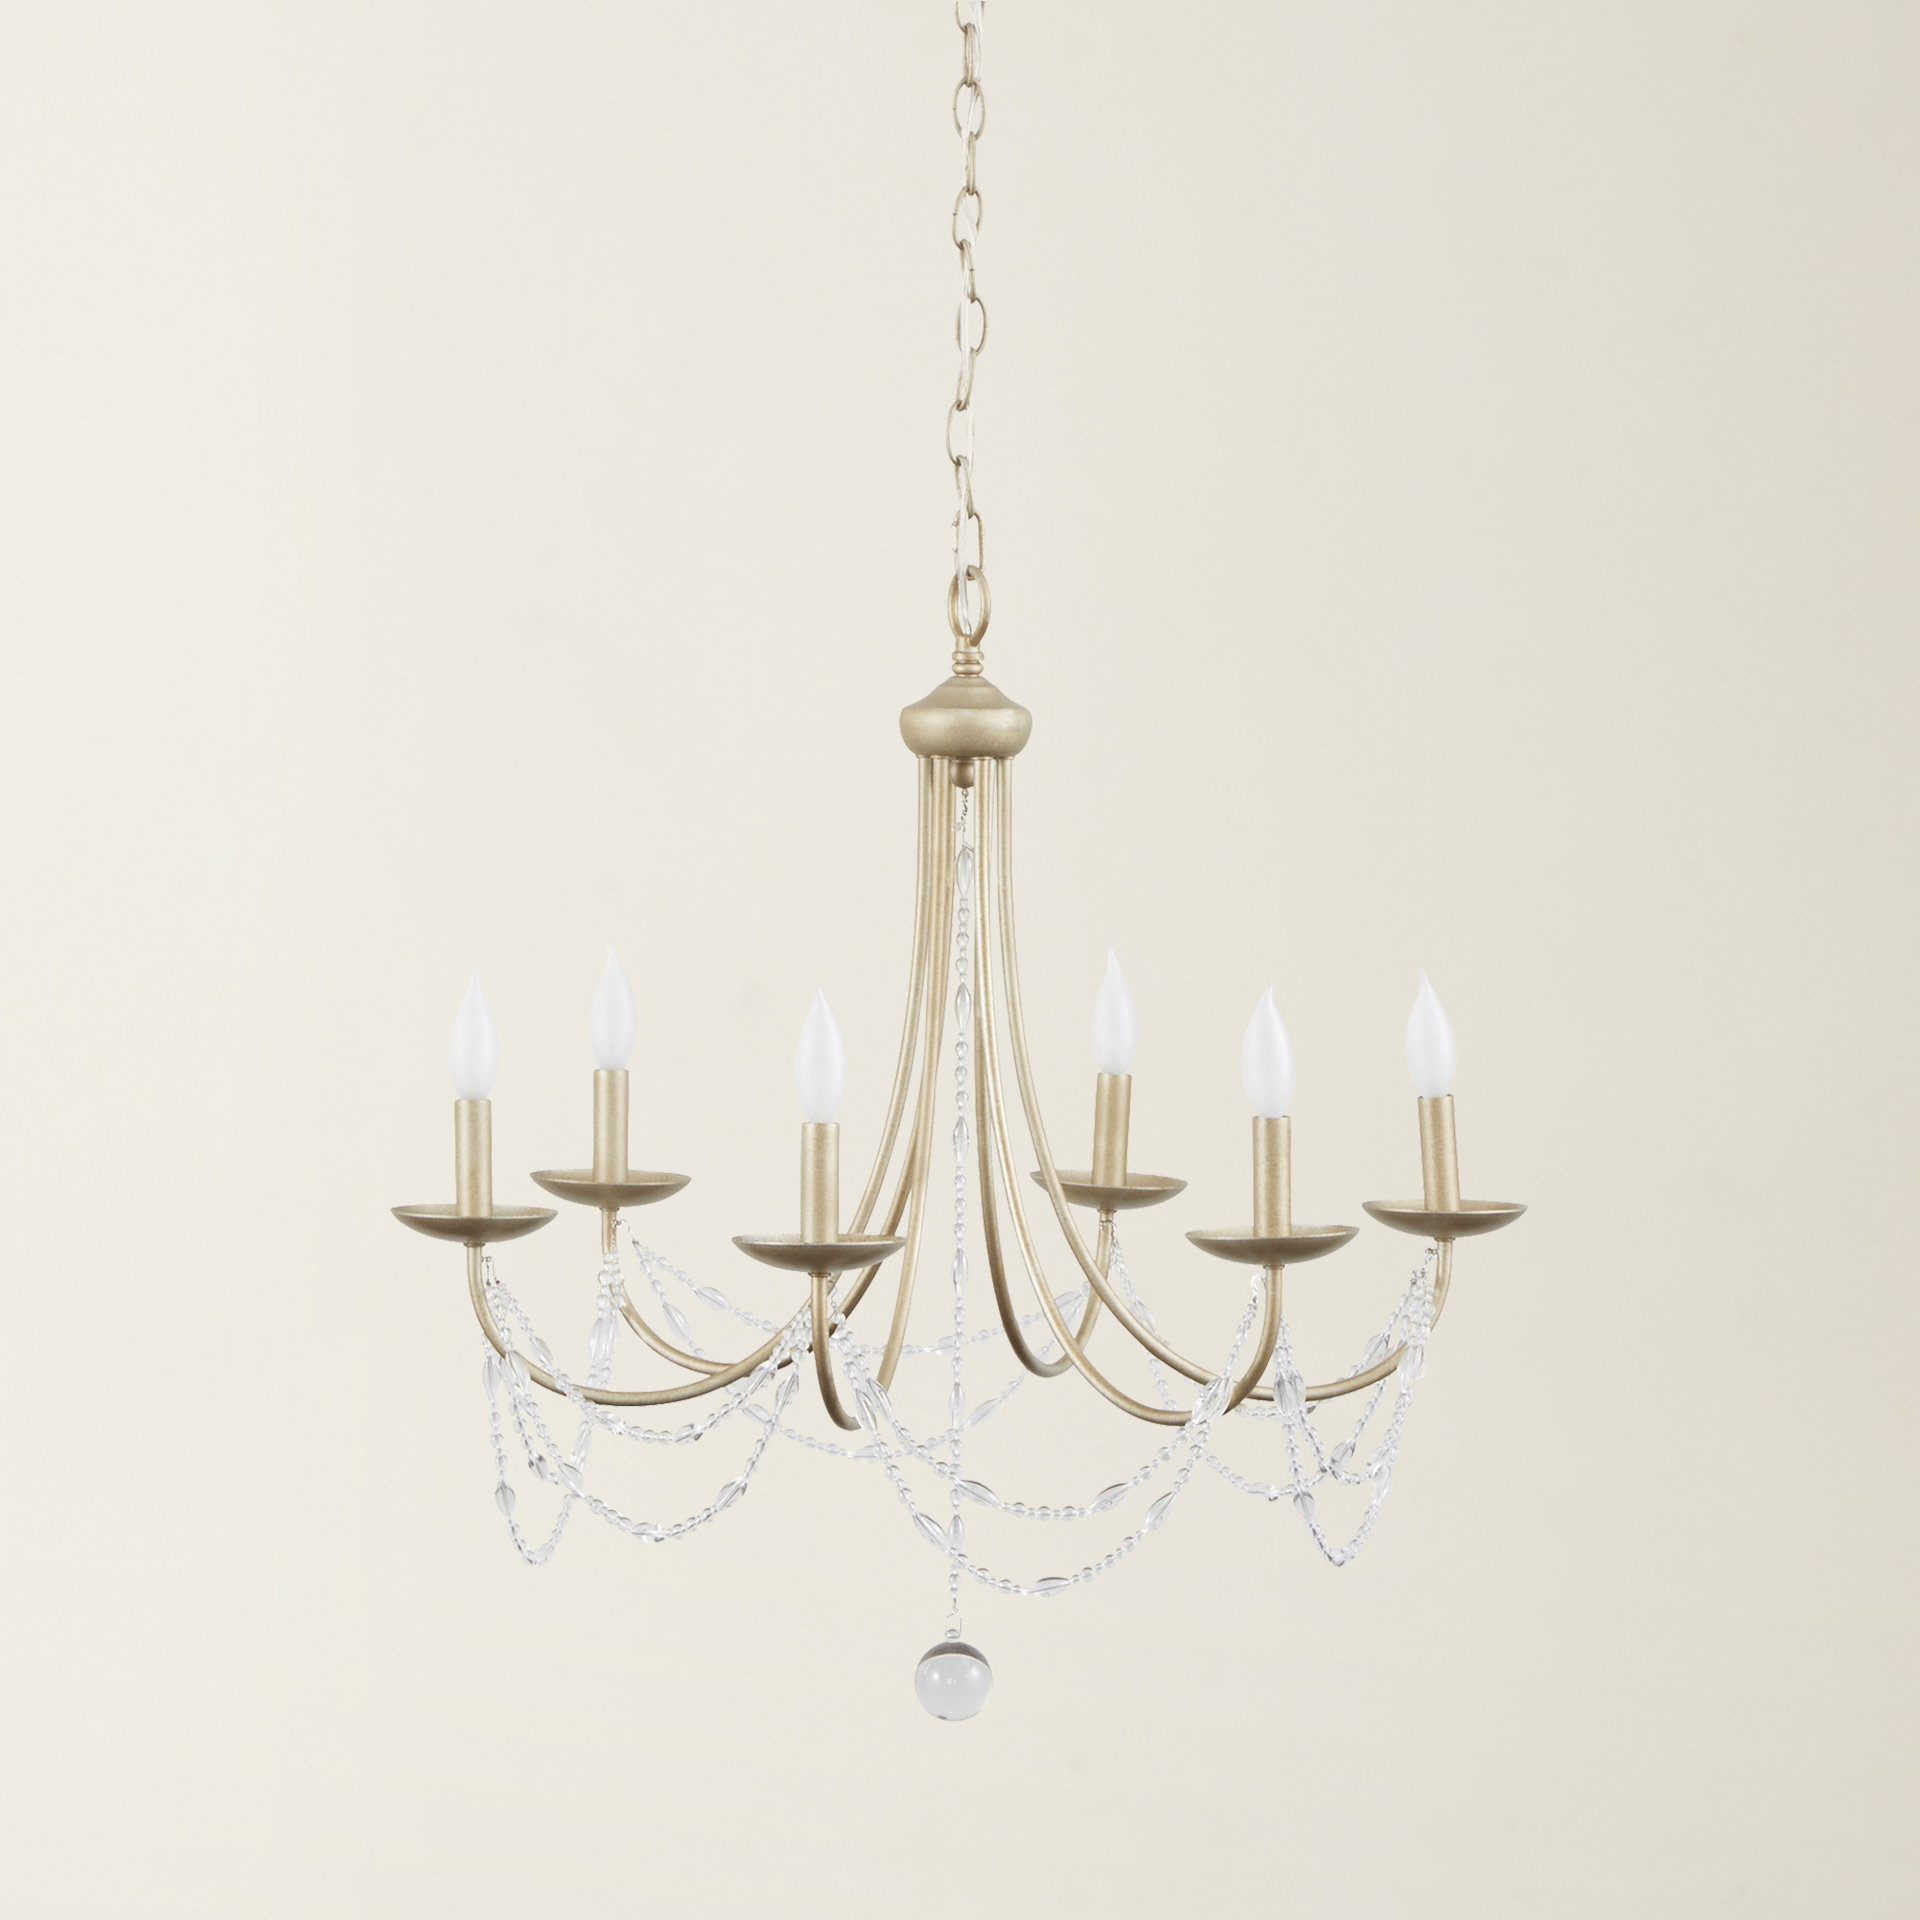 Florentina 5 Light Candle Style Chandeliers Throughout 2020 Nantucket 6 Light Candle Style Chandelier (View 14 of 25)